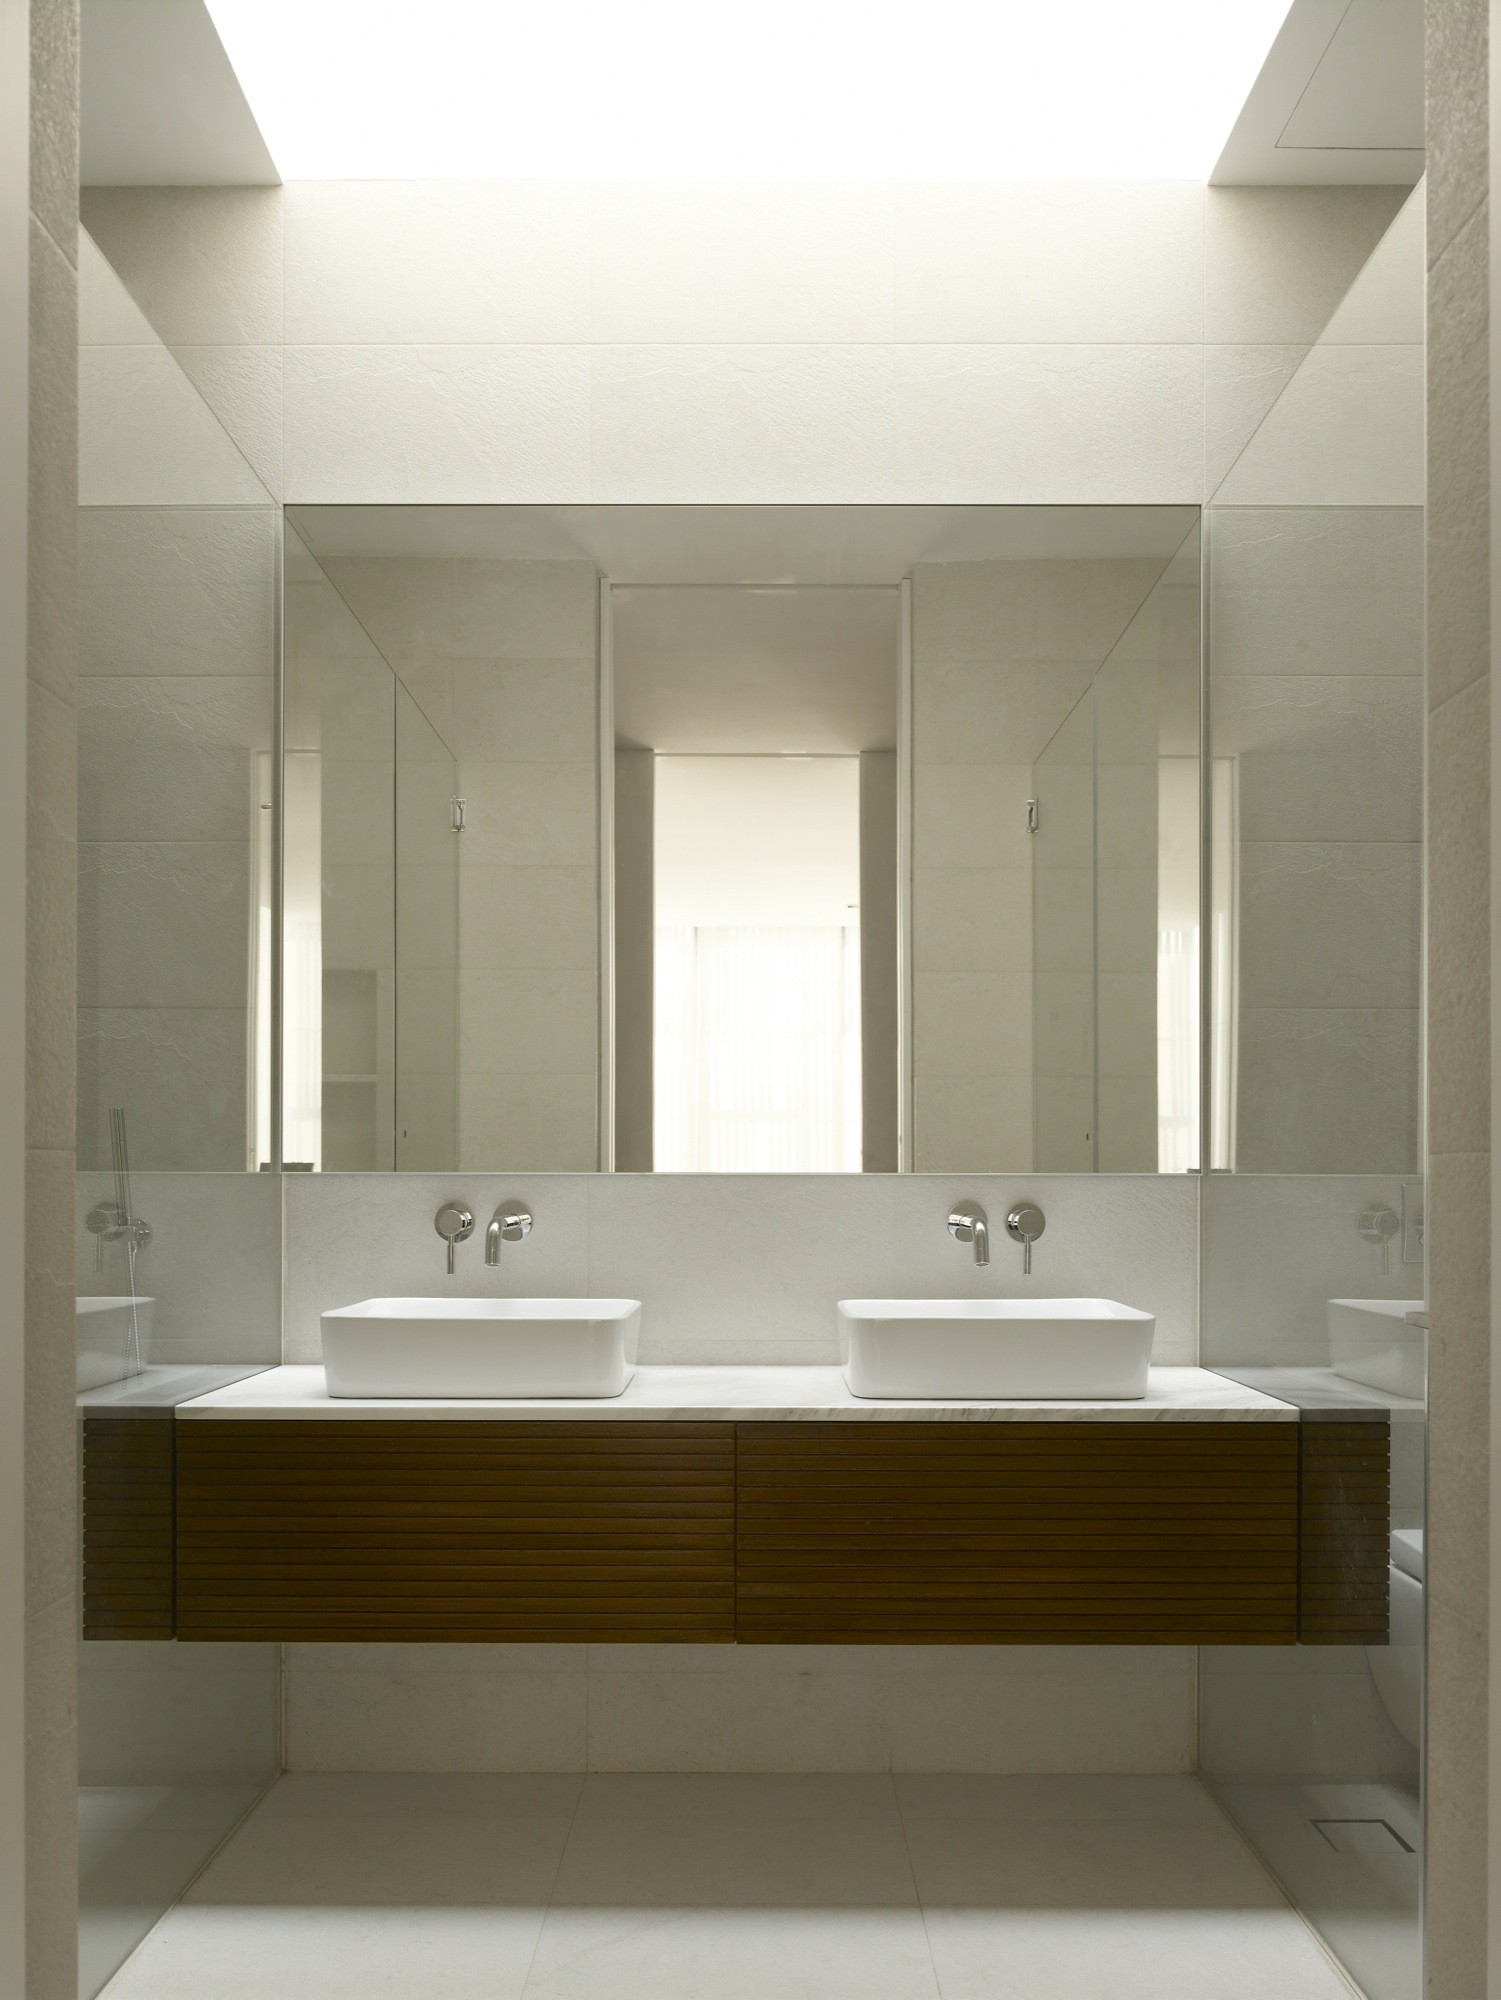 Gallery of bass ensemble hyla architects 2 for Bathroom sink singapore